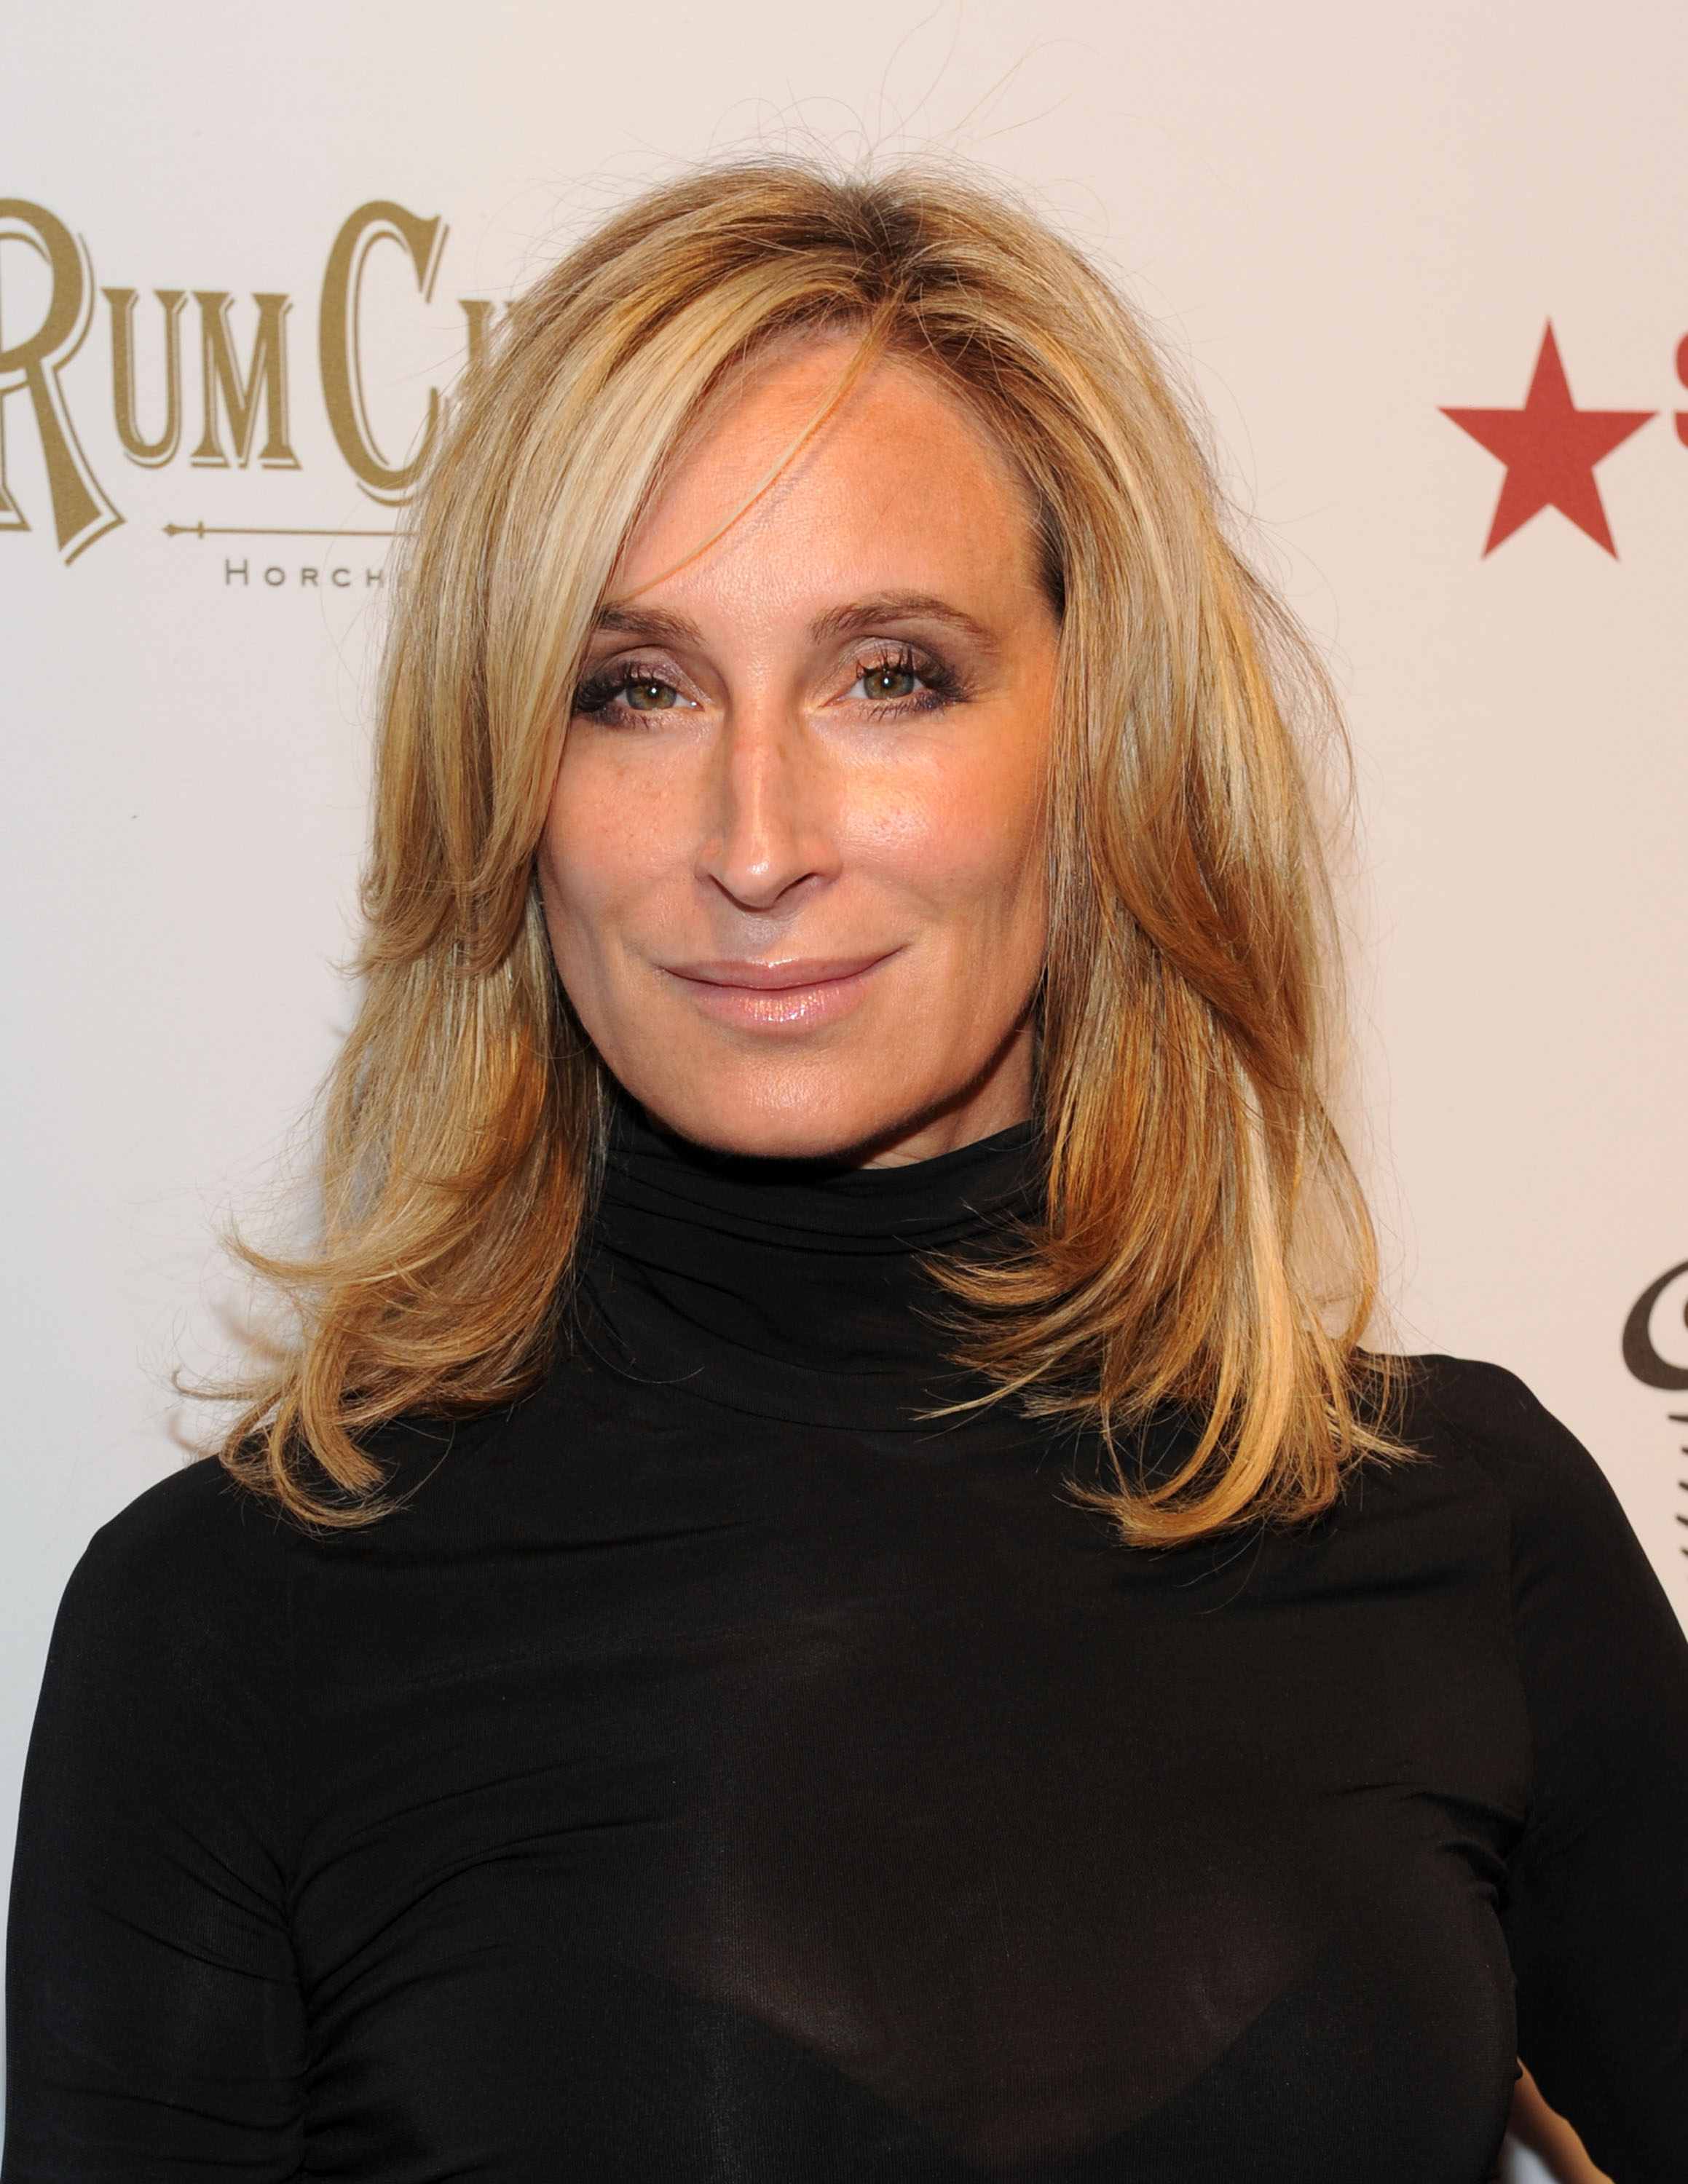 Celebrites Sonja Morgan nudes (84 photo), Sexy, Sideboobs, Boobs, braless 2019